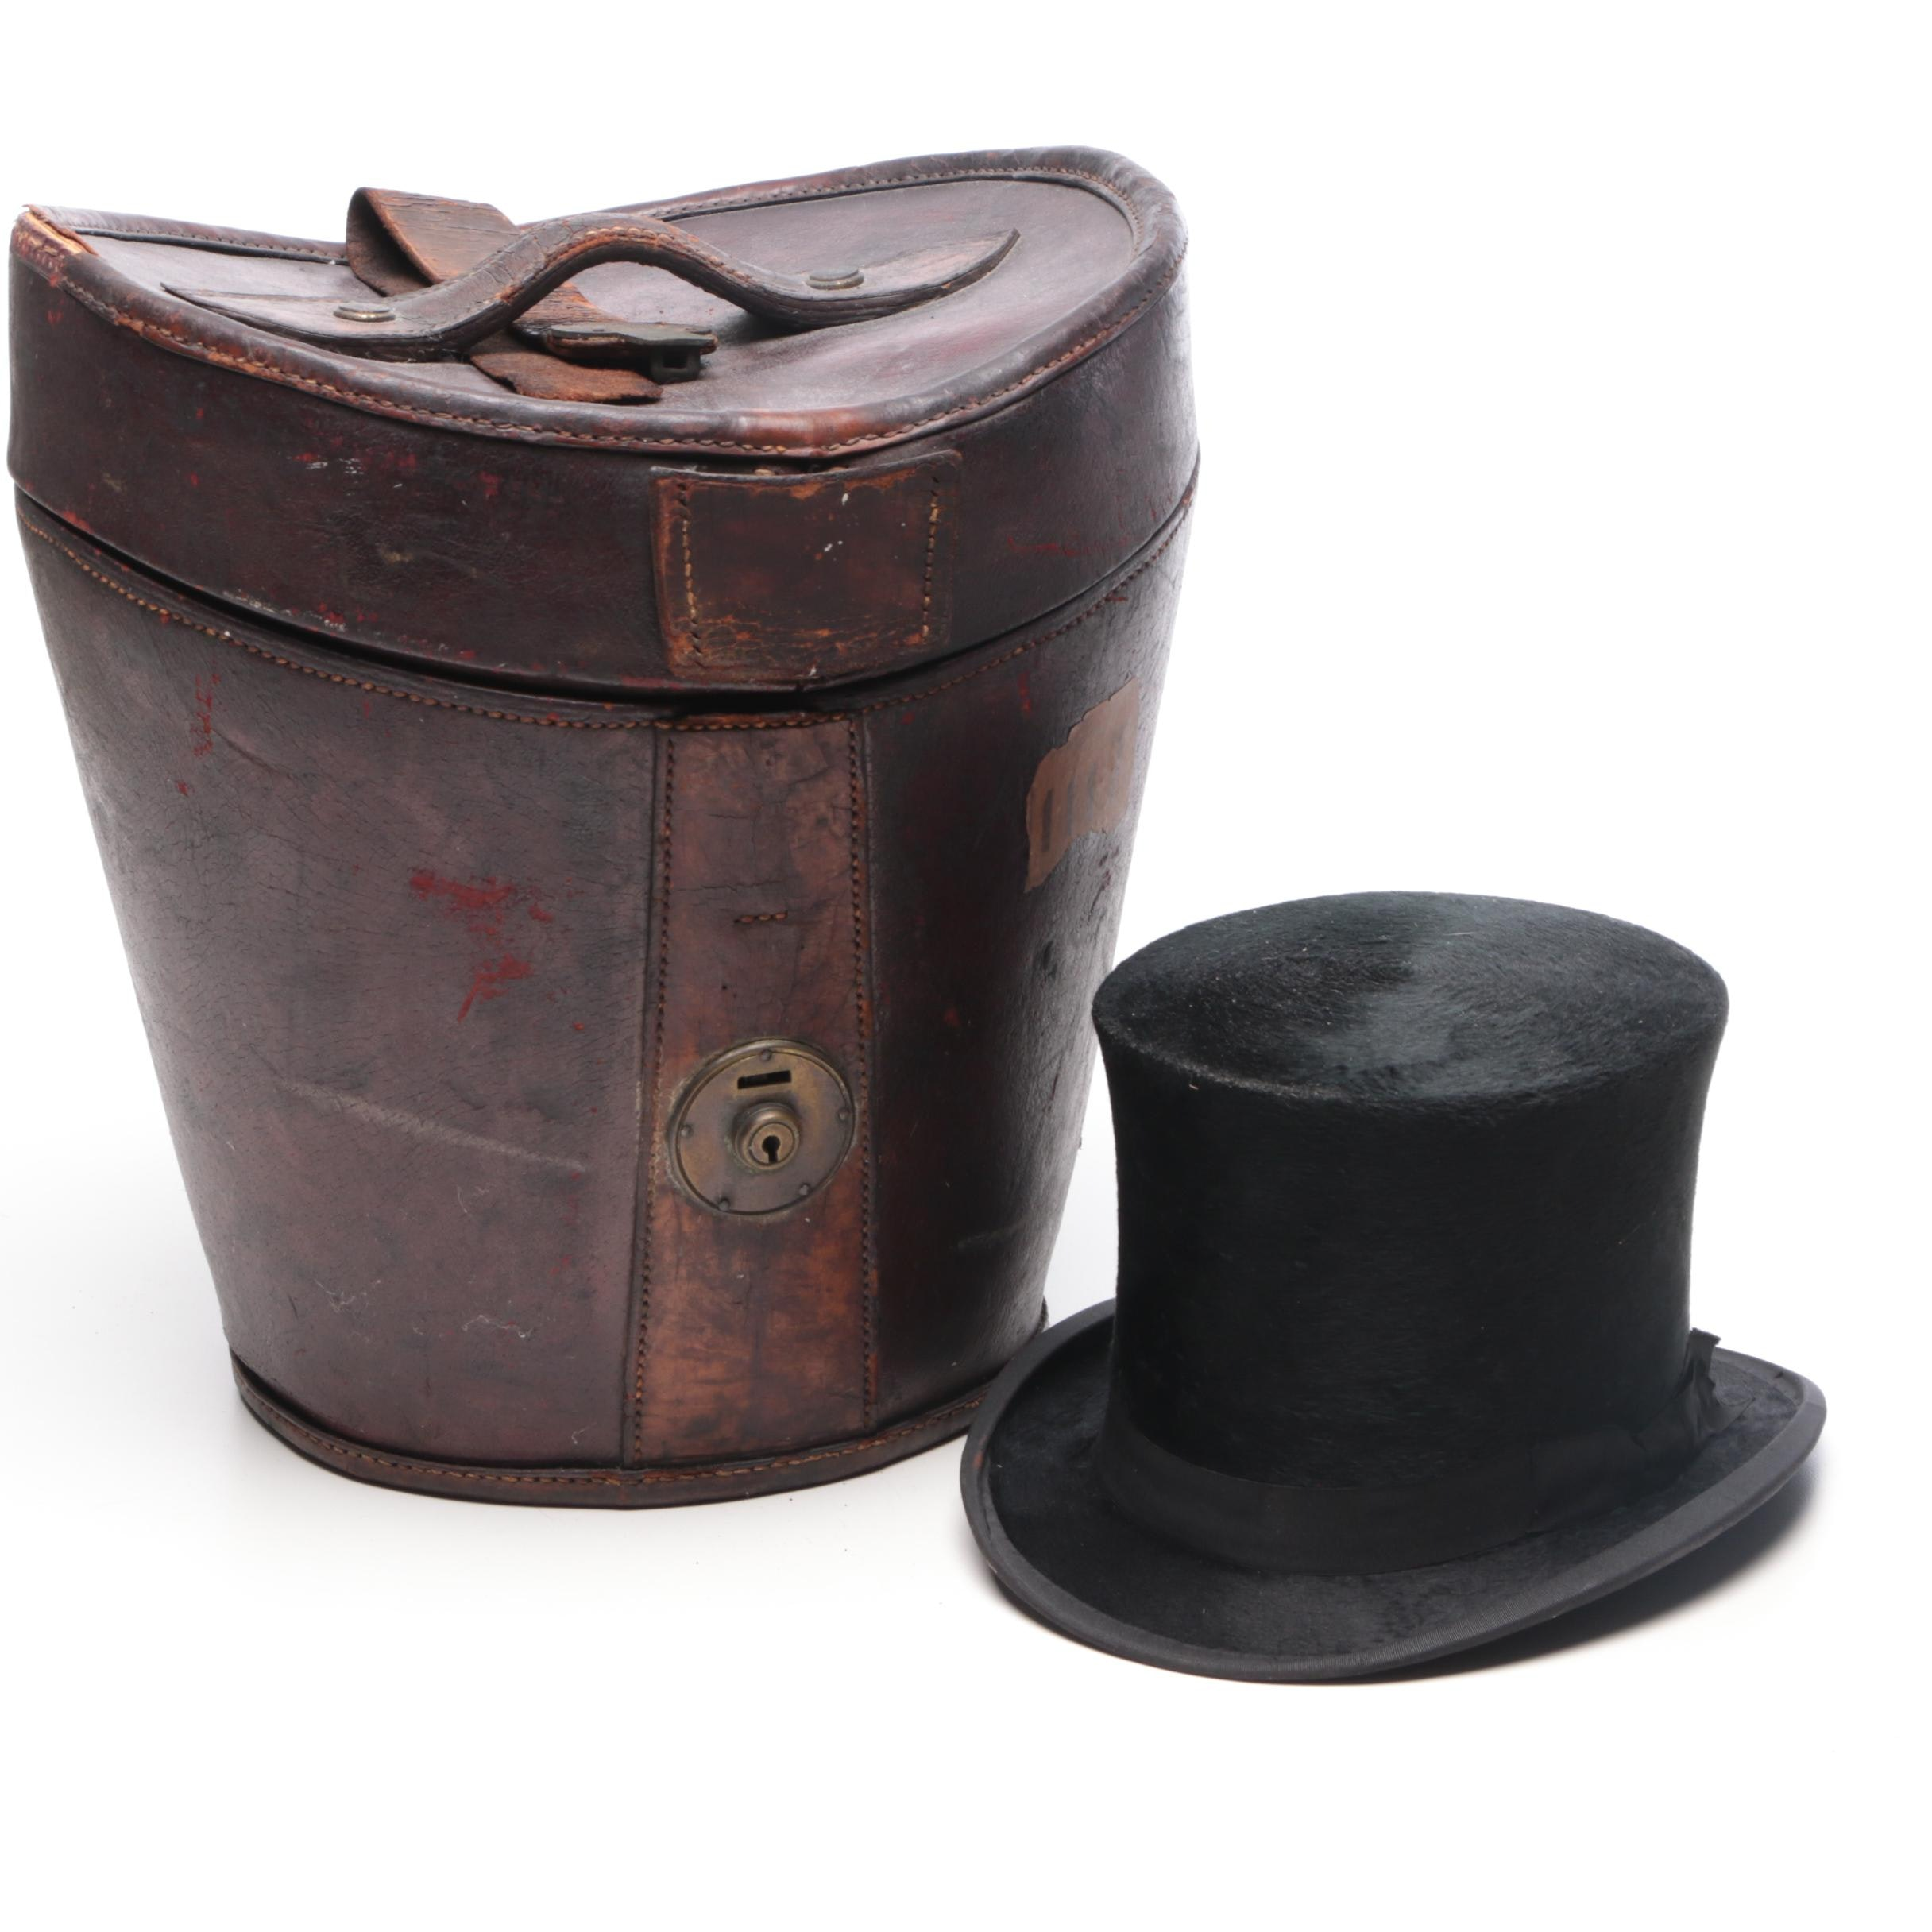 Best London Beaver Felt Top Hat with Leather Box, Circa 1910